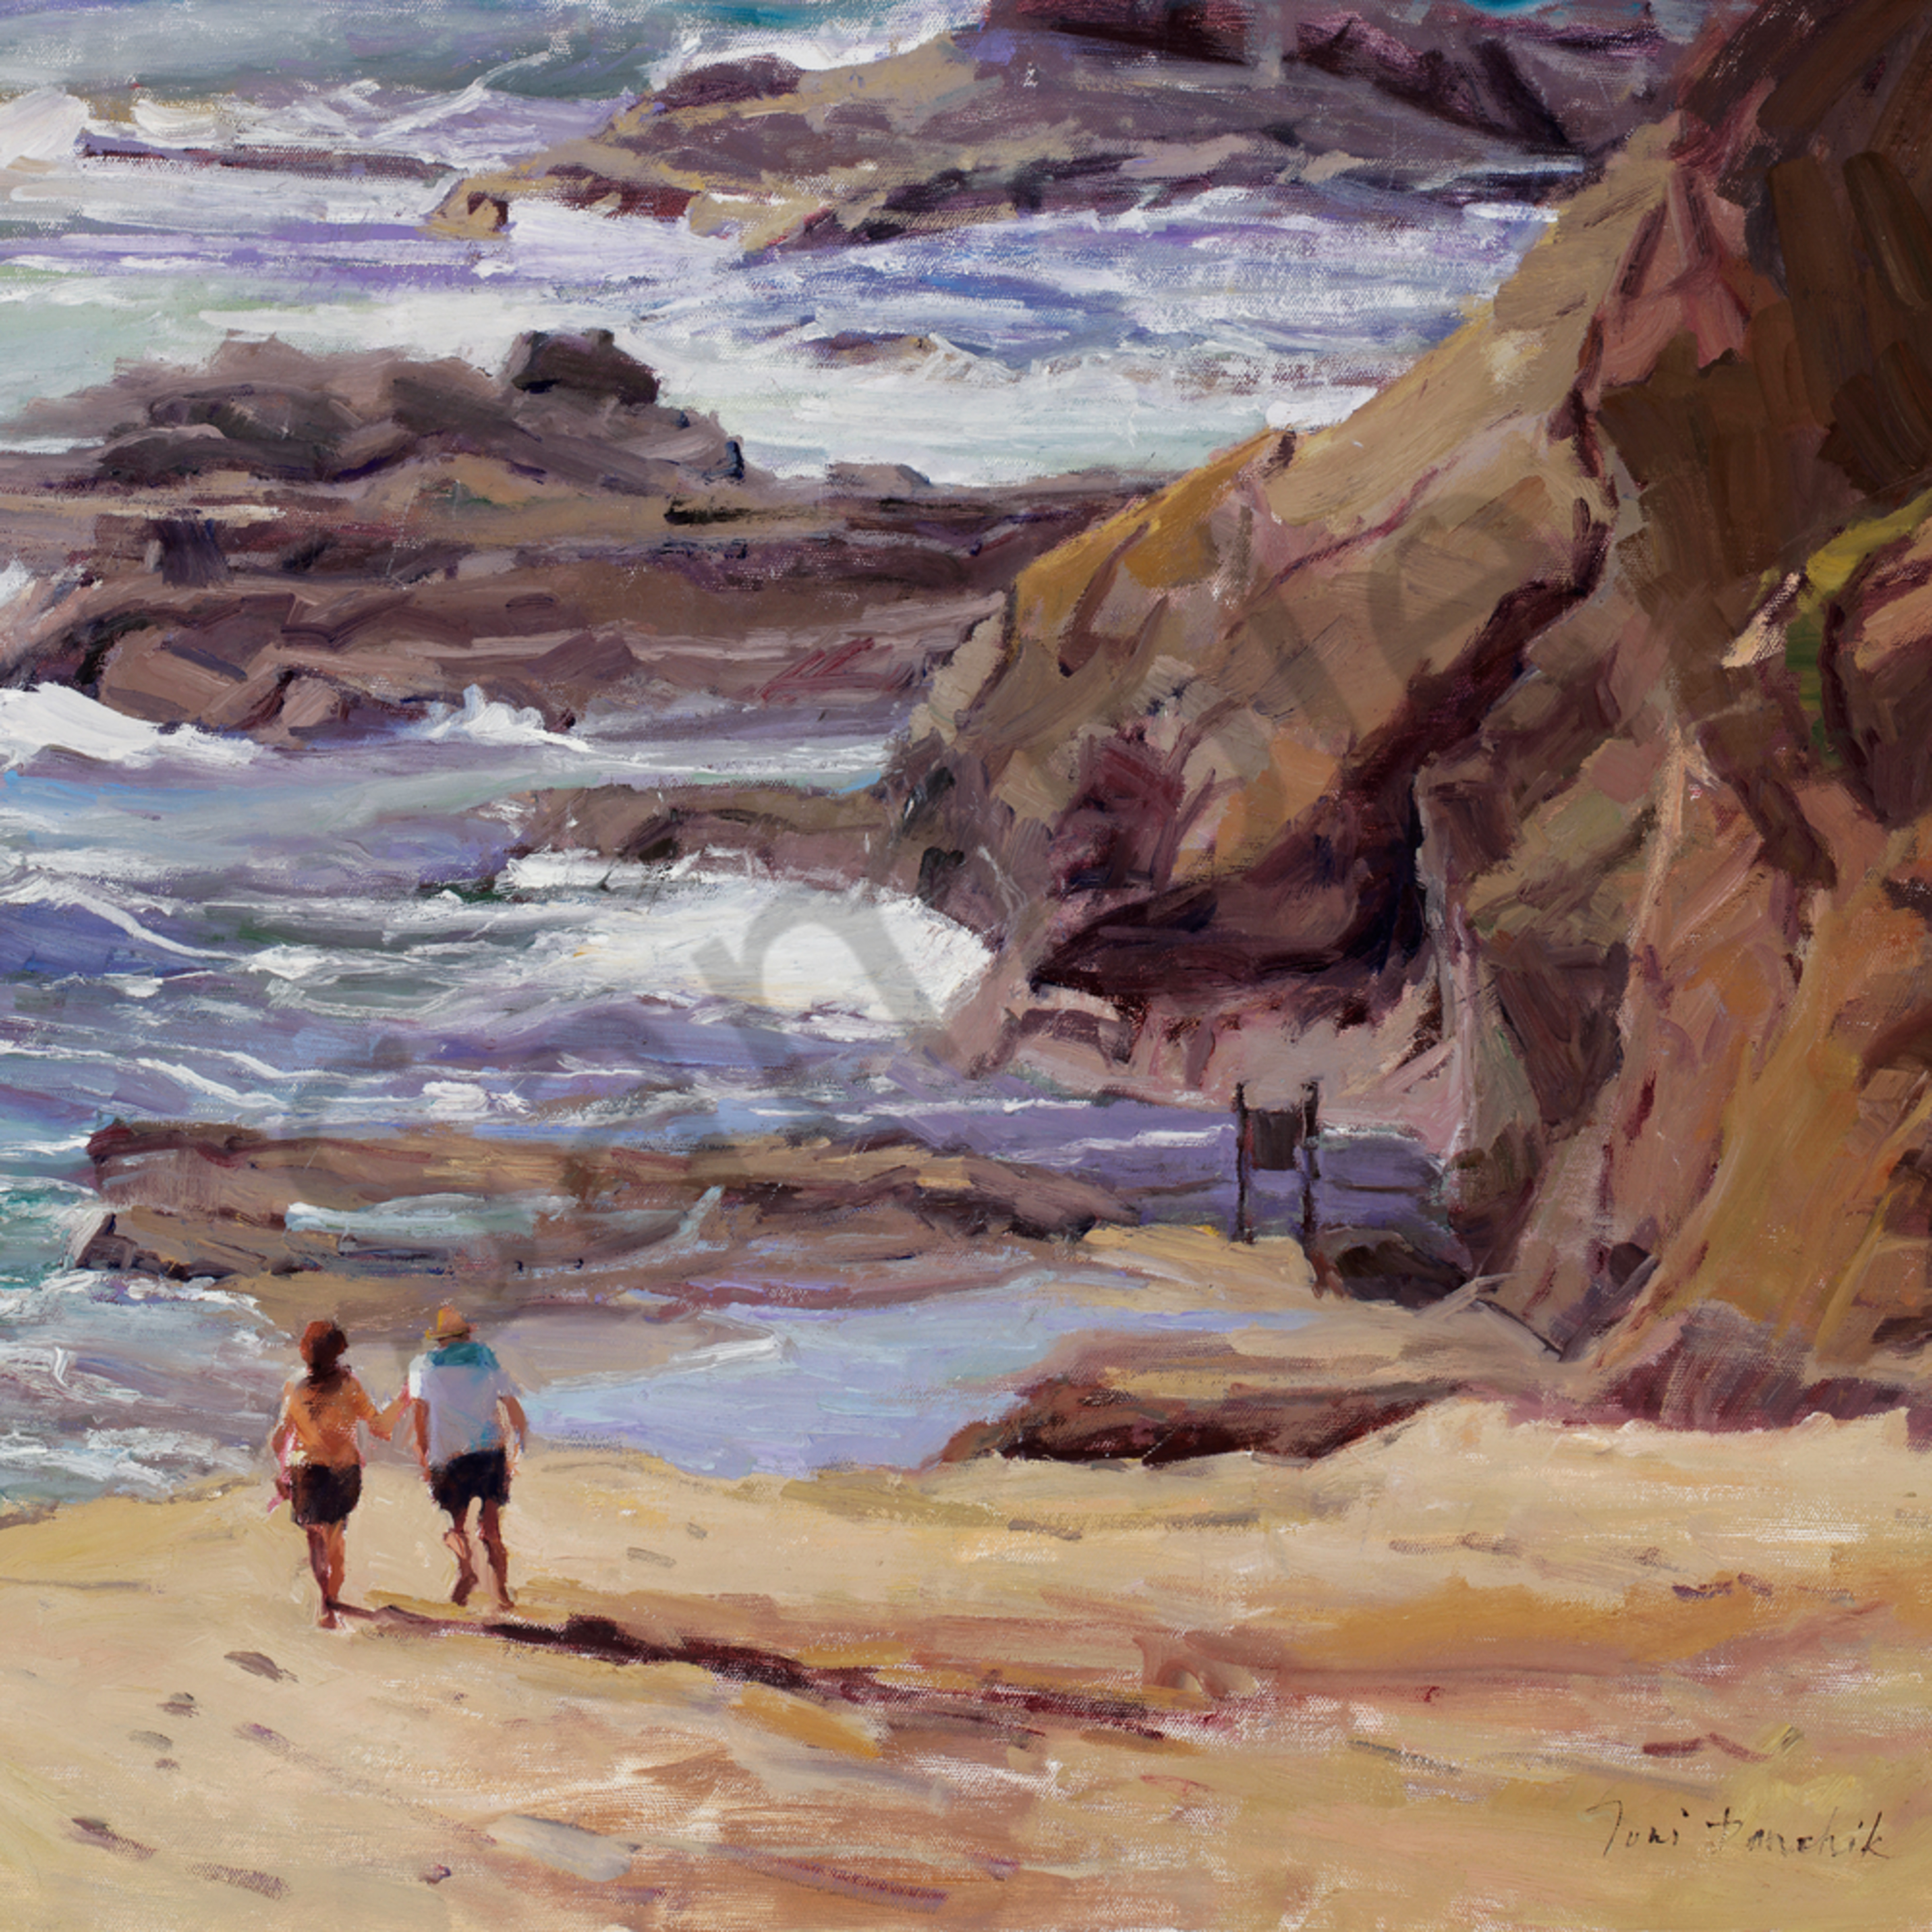 A walk on the beach treasure island 22 x 28 t2ecuy